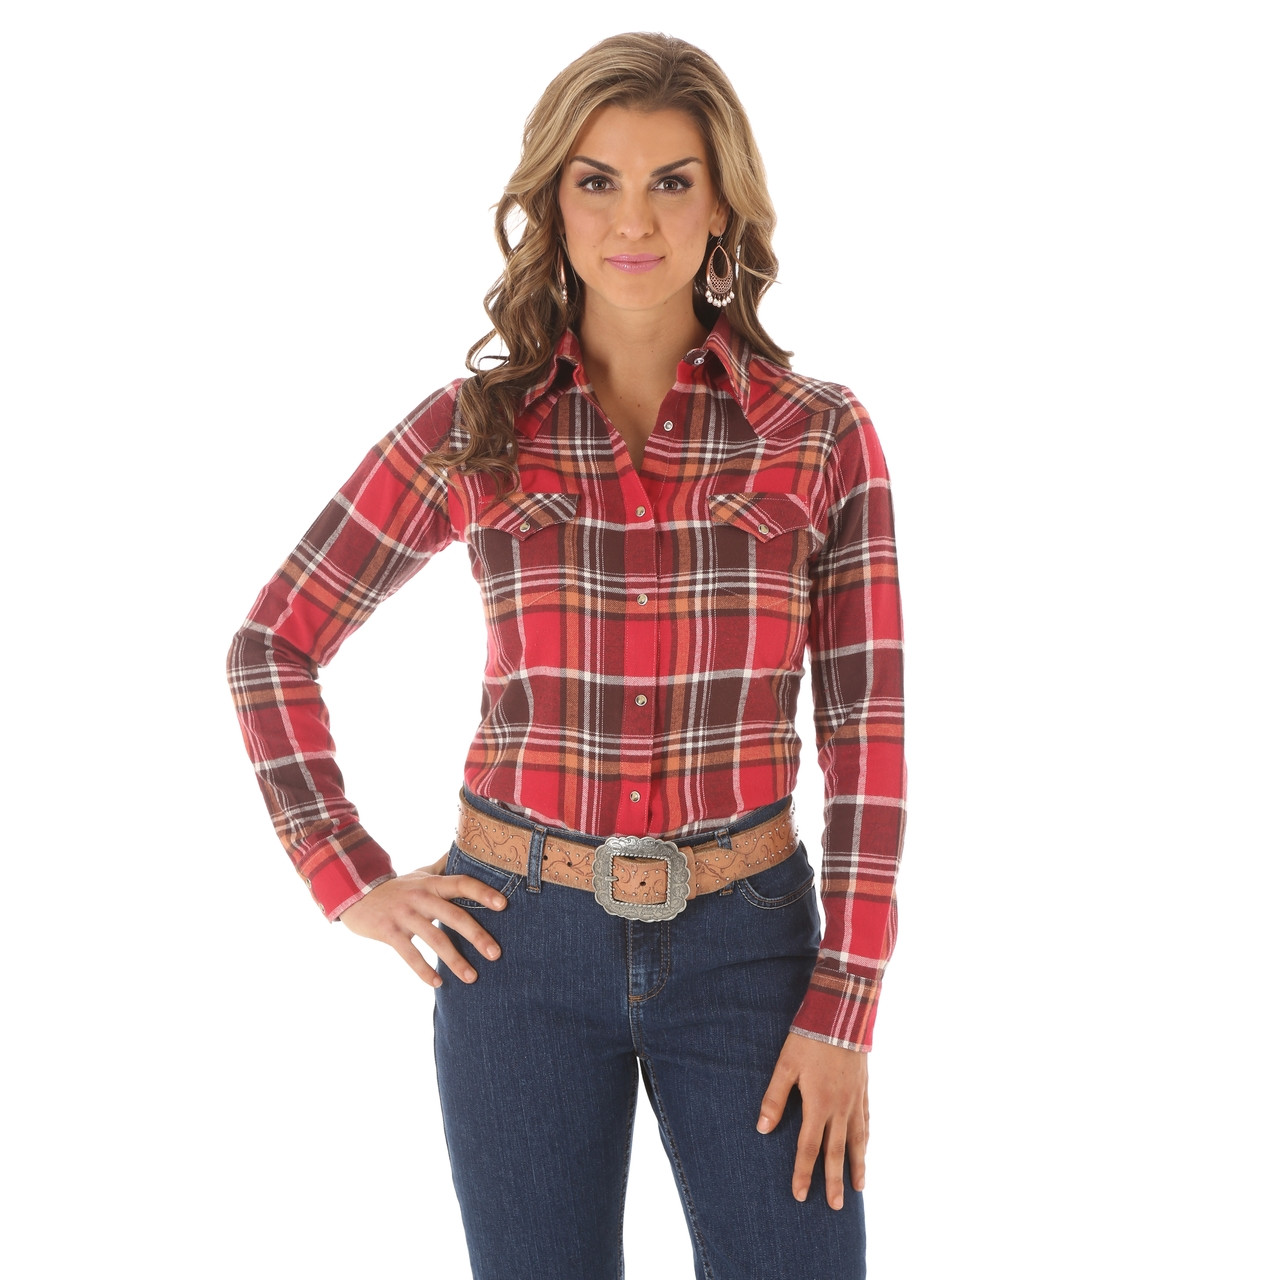 8b5eb61bfc Women s Wrangler Red Brown Plaid Flannel Shirt - Herbert s Boots and  Western Wear